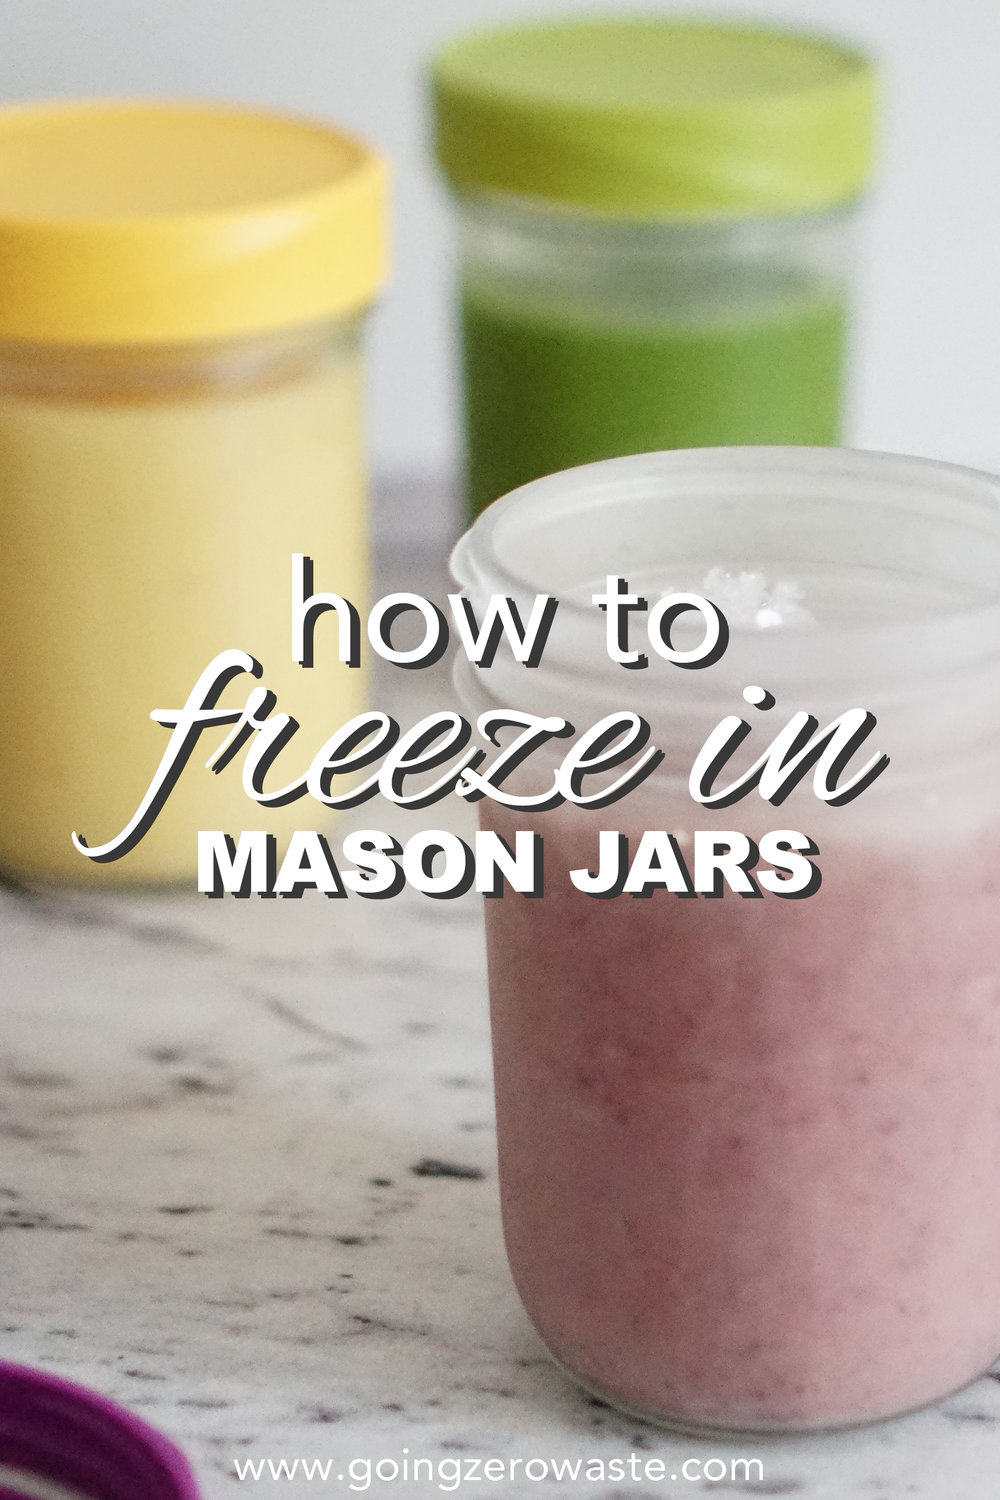 How to freeze in mason jars from www.goingzerwaste.com. Avoid food waste / zero waste / mason jars